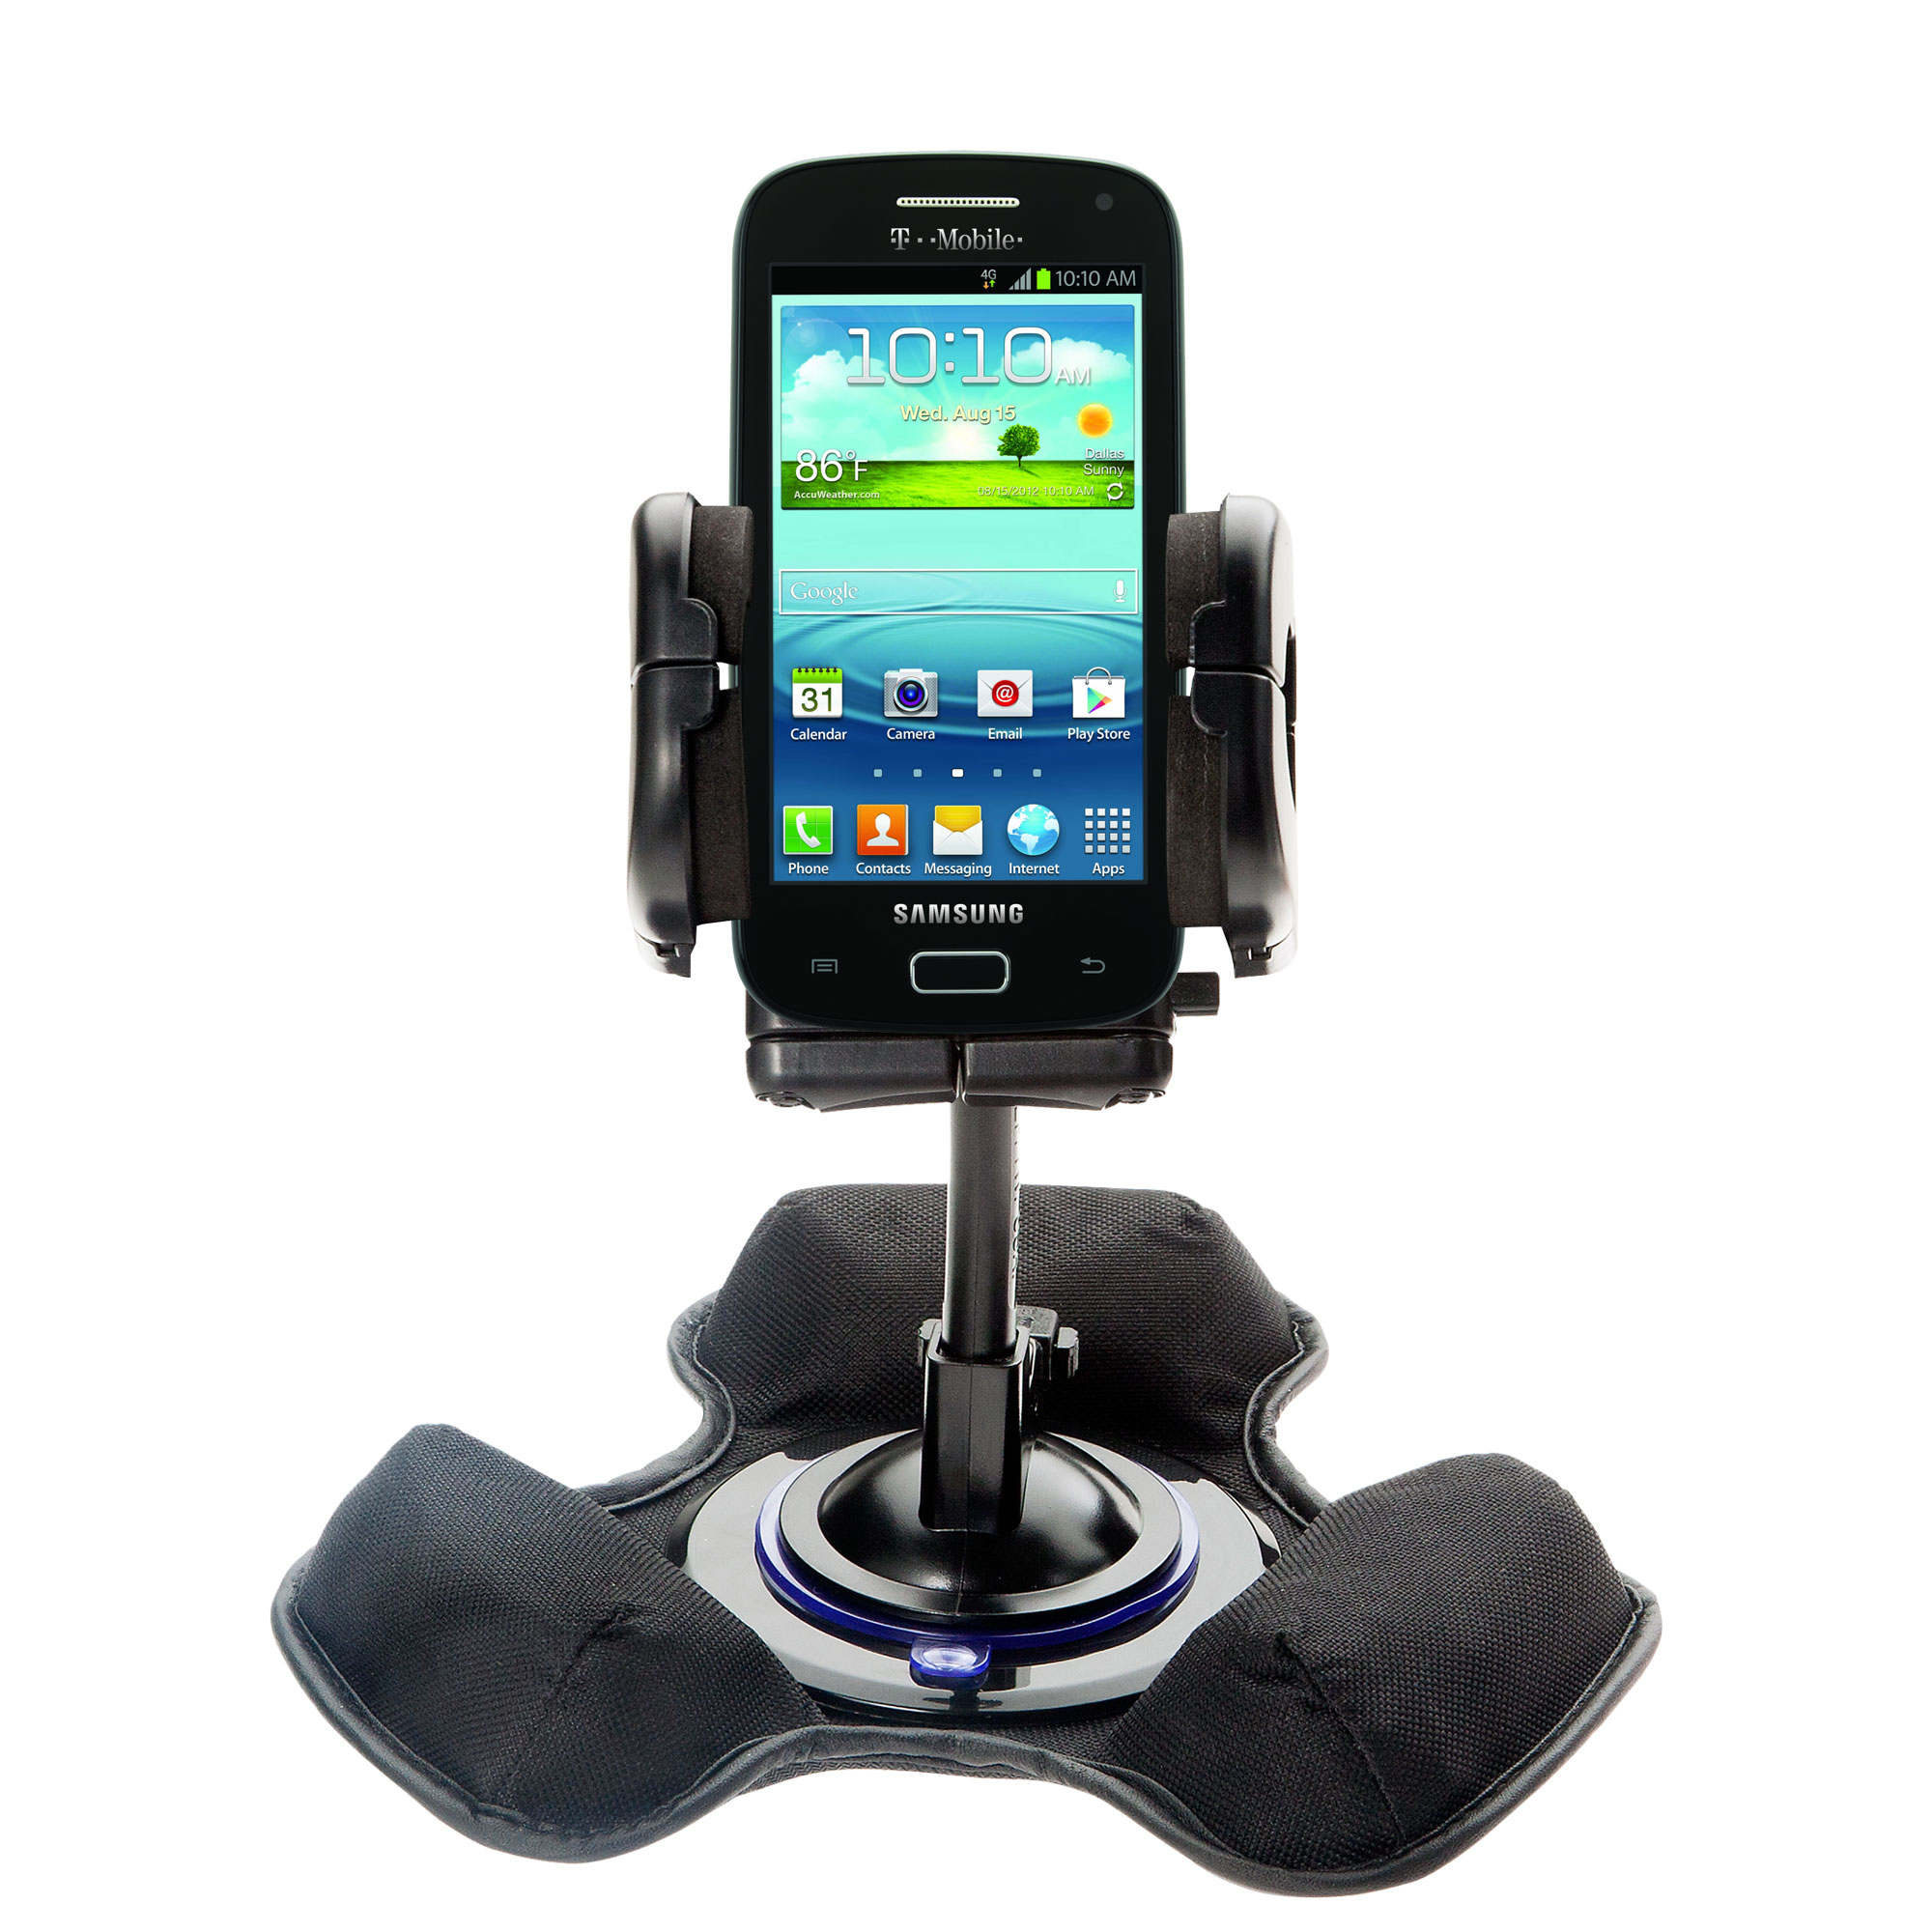 Car / Truck Vehicle Holder Mounting System for Samsung Galaxy S Relay Includes Unique Flexible Windshield Suction and Universal Dashboard Mount Option